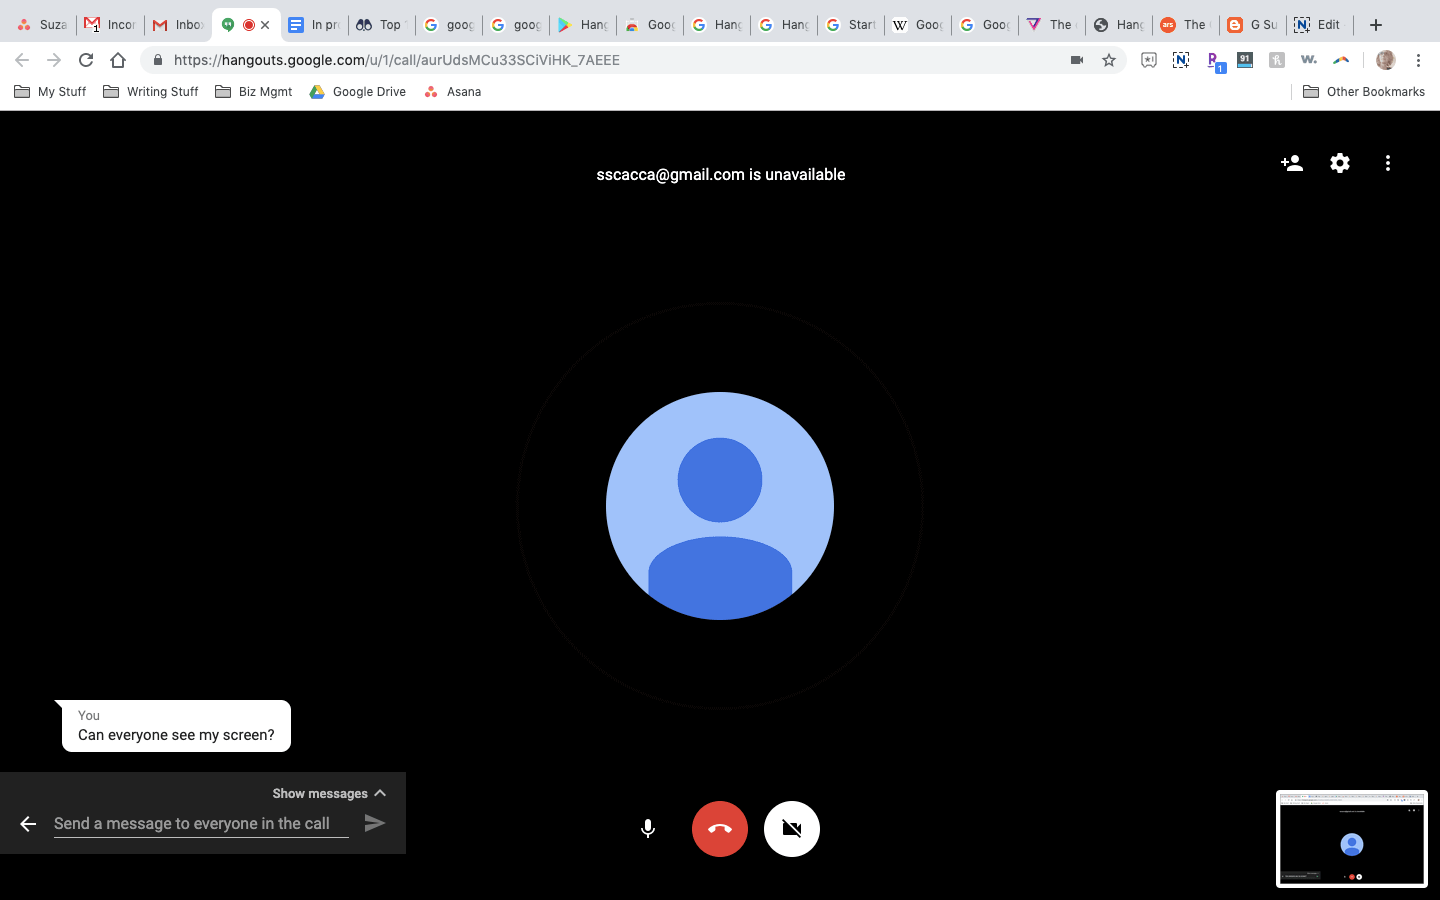 28 Google Hangouts Hacks For Gmail And G Suite Copper